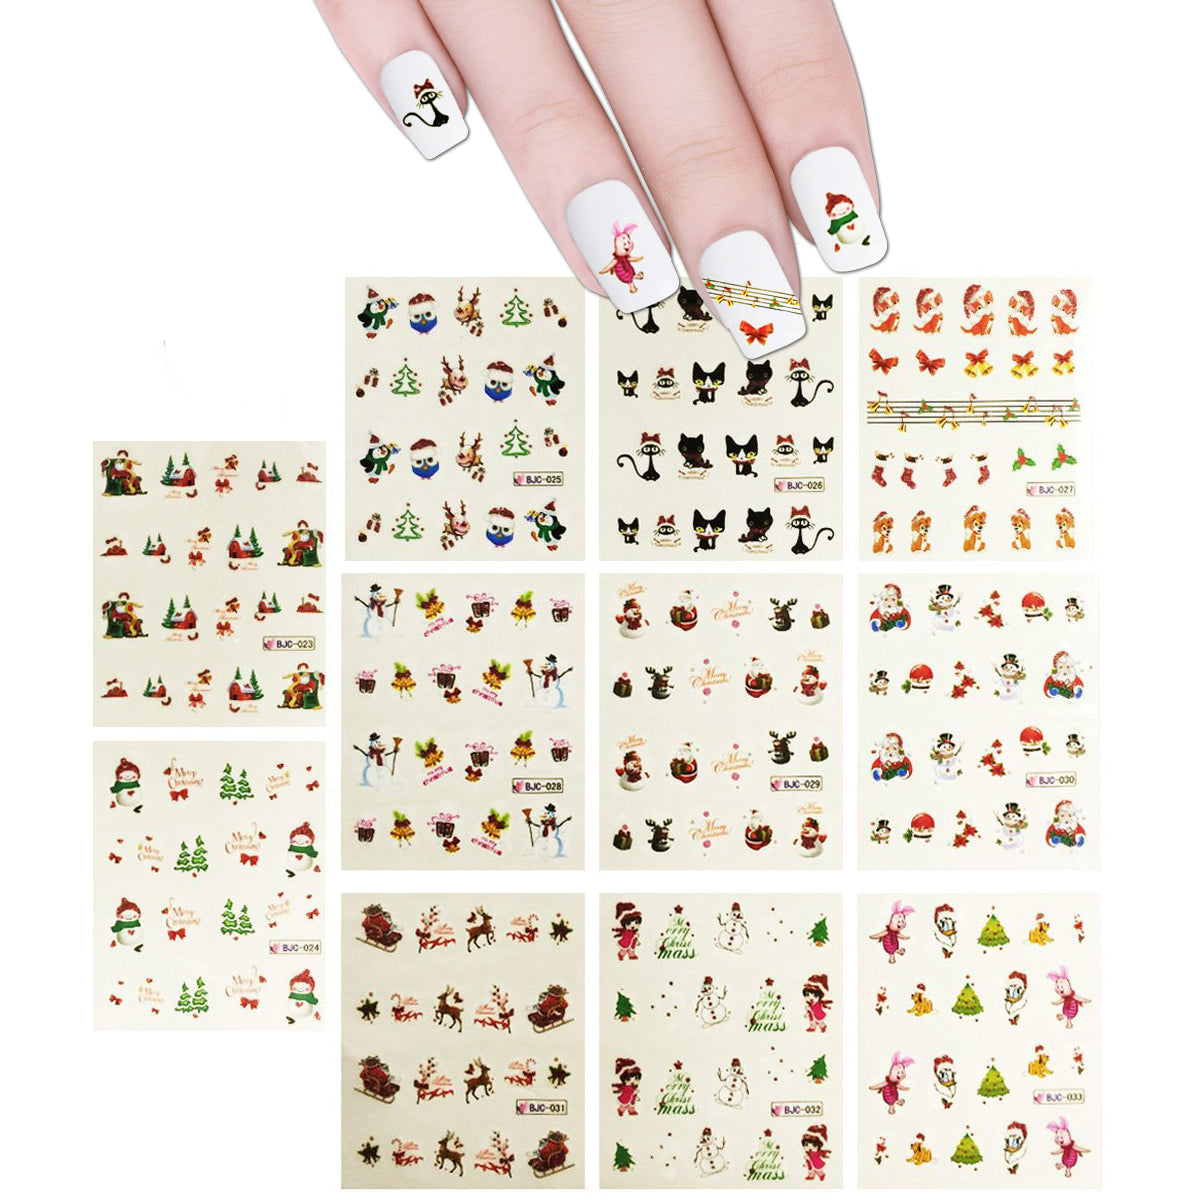 Wrapables Fingernail Tattoo Christmas Nail Art (11 Designs/220 Nail Tattoos)